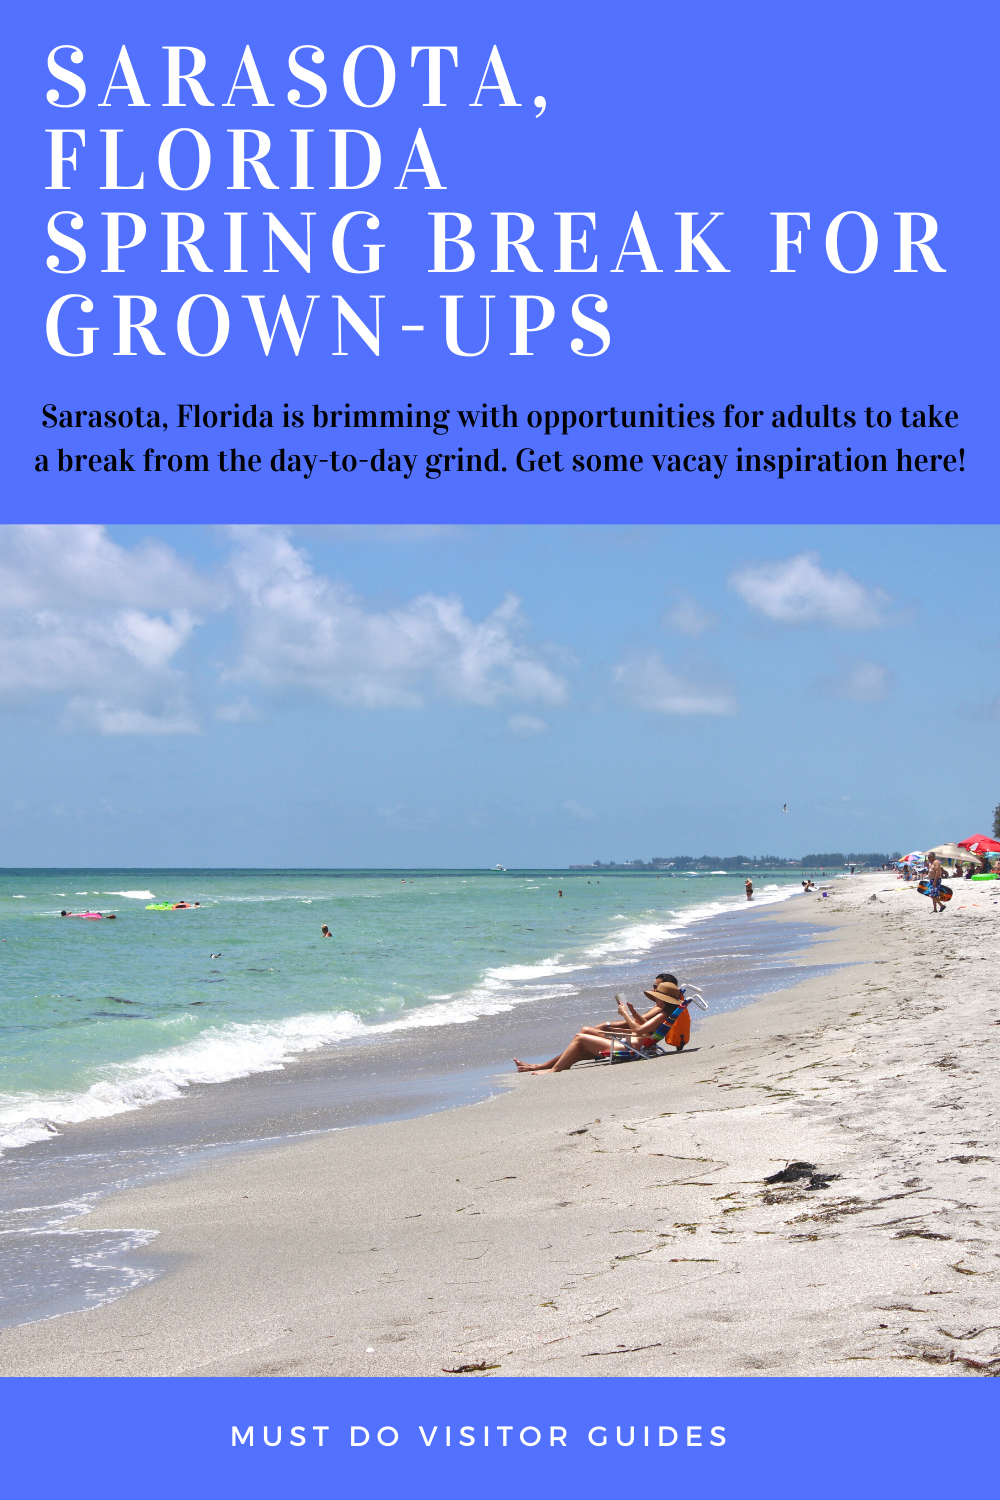 Sarasota, Florida Spring Break for Gown-Ups. Sarasota, Florida is brimming with opportunities for adults to take a break from the day-to-day grind. Get some vacay inspiration here!